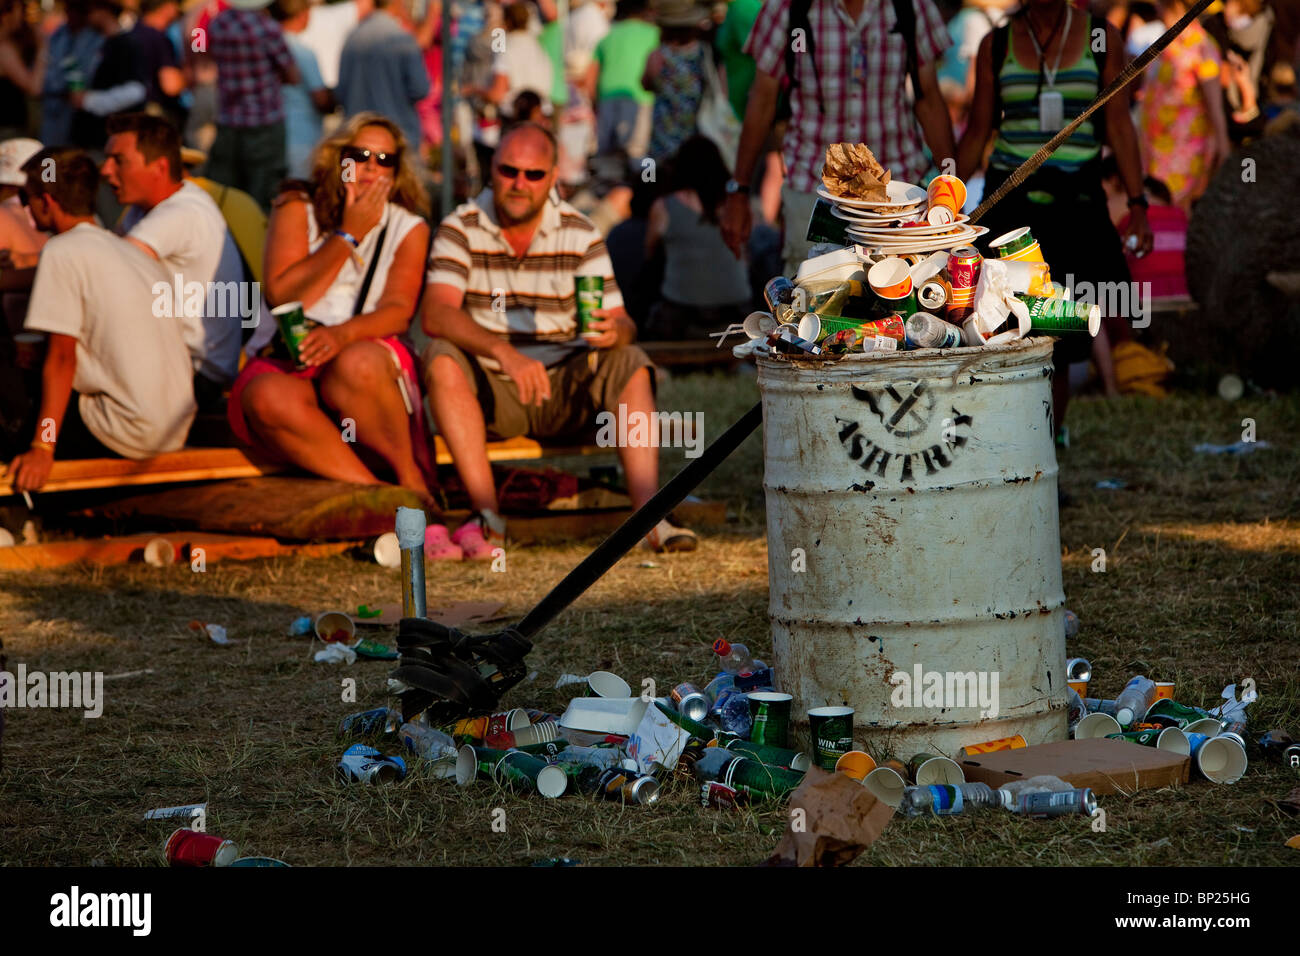 Glastonbury Festival 2010, a bin overflowing with litter and rubbish - Stock Image